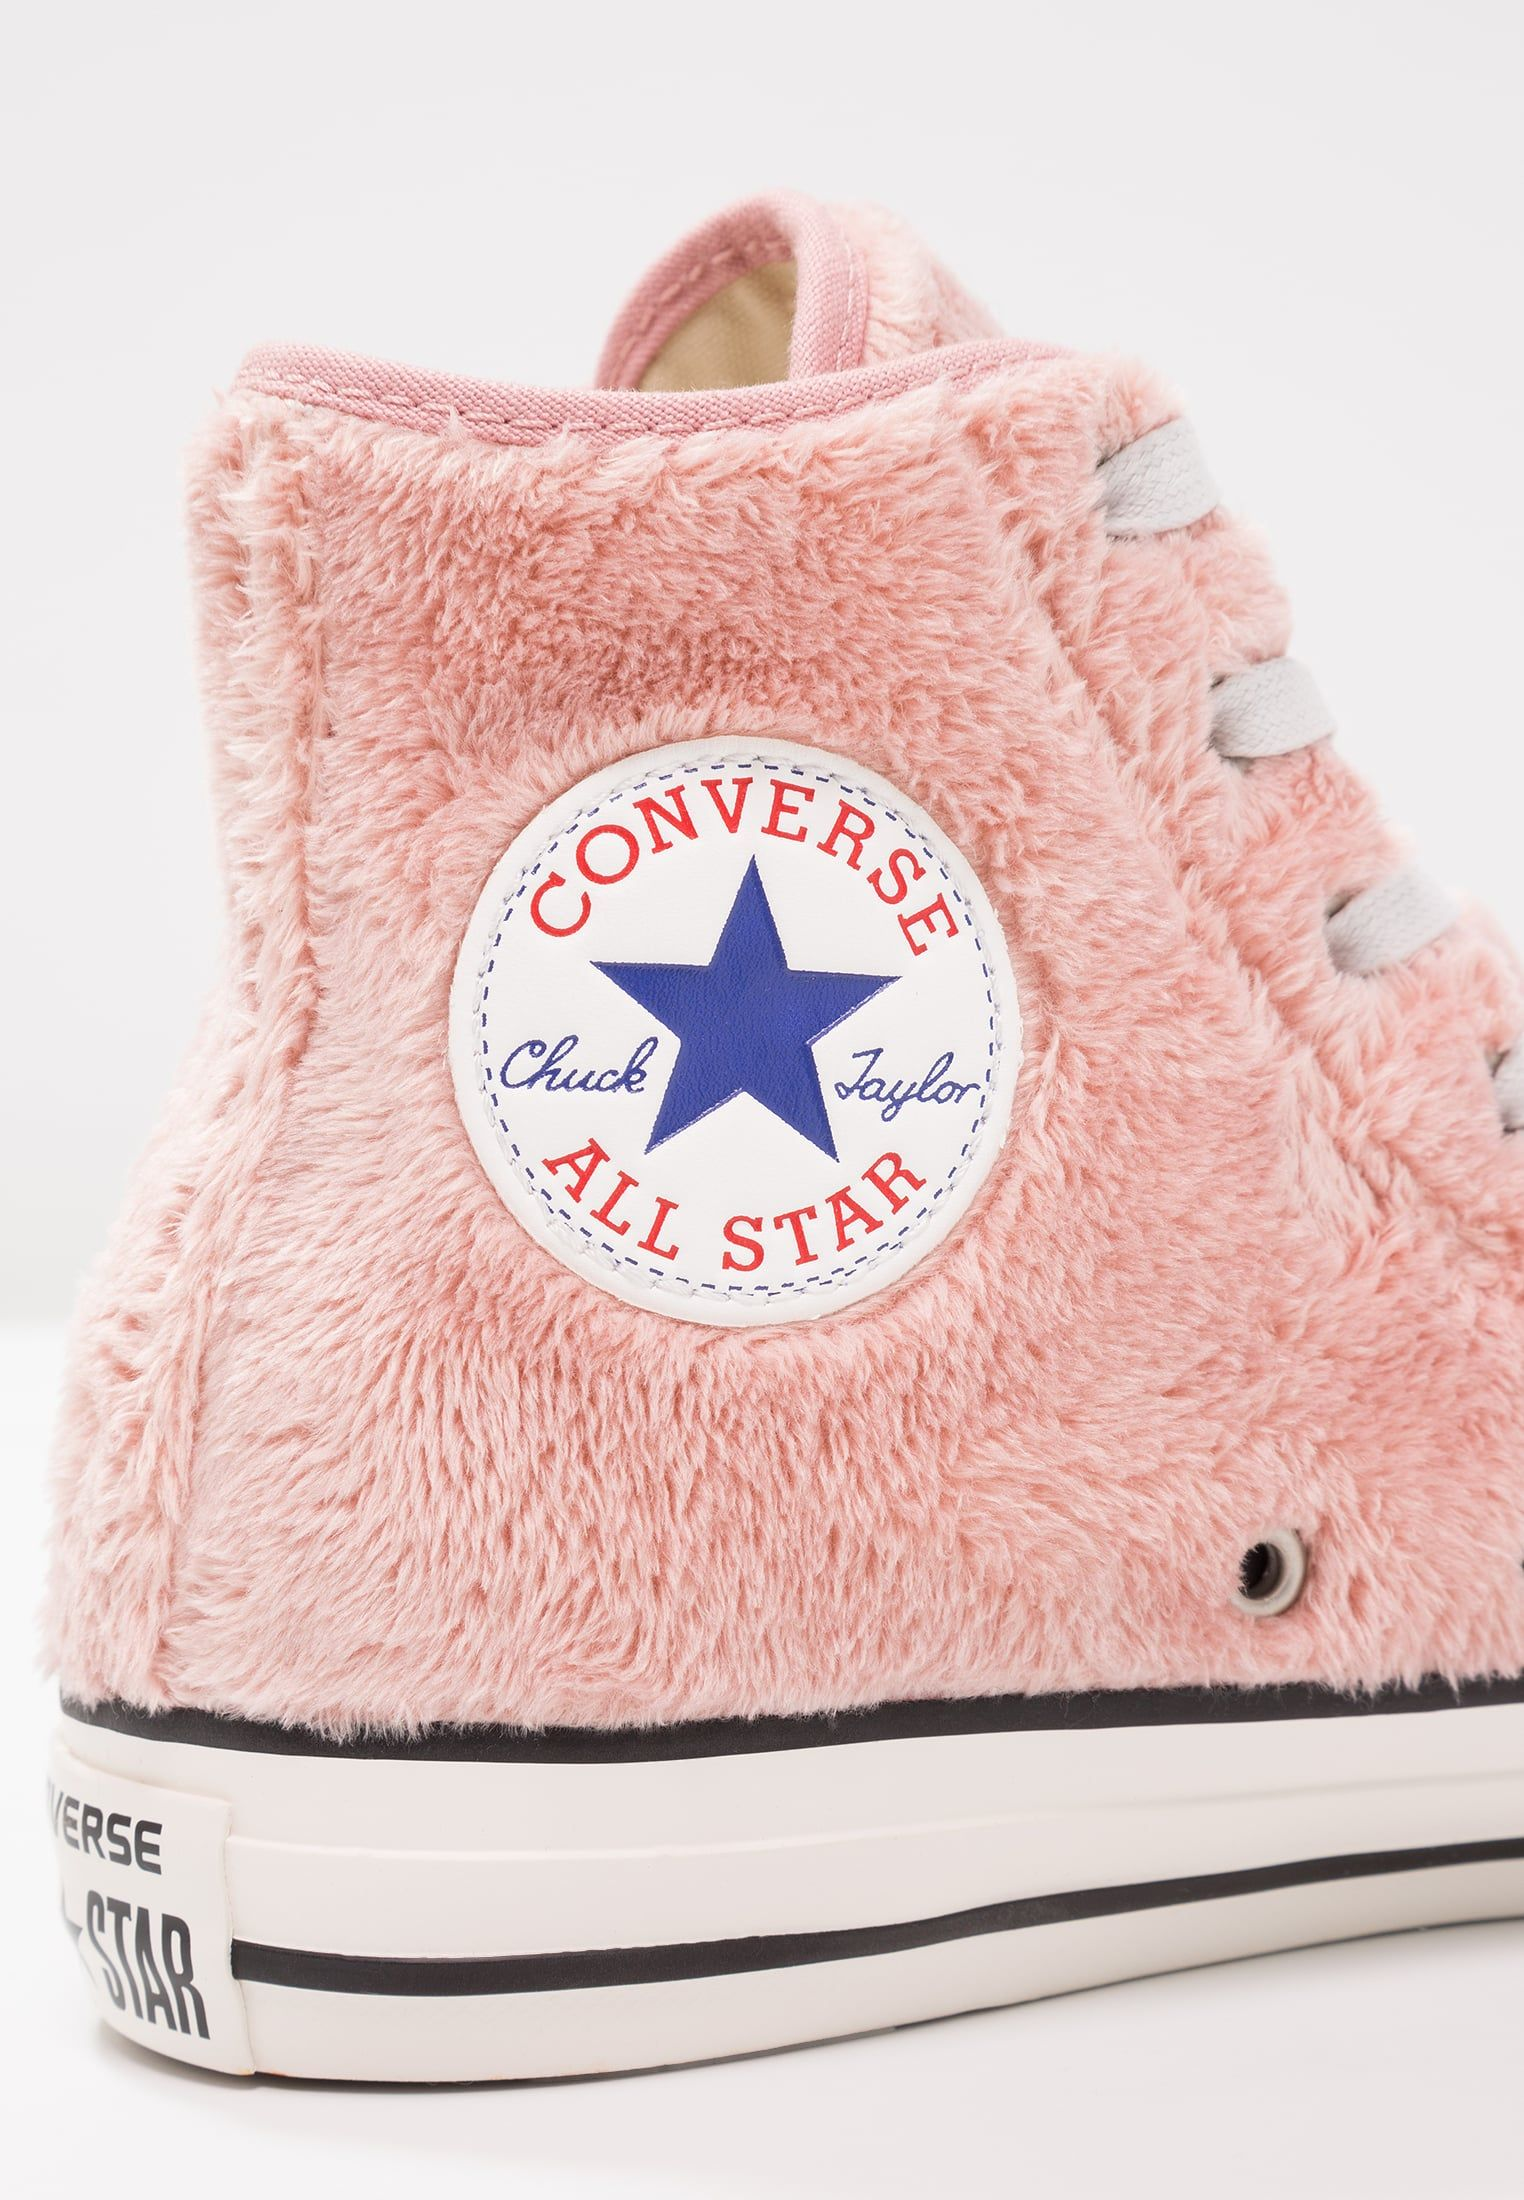 ConverseShoes Converse ALL STAR HI FAUX FUR pink | Converse